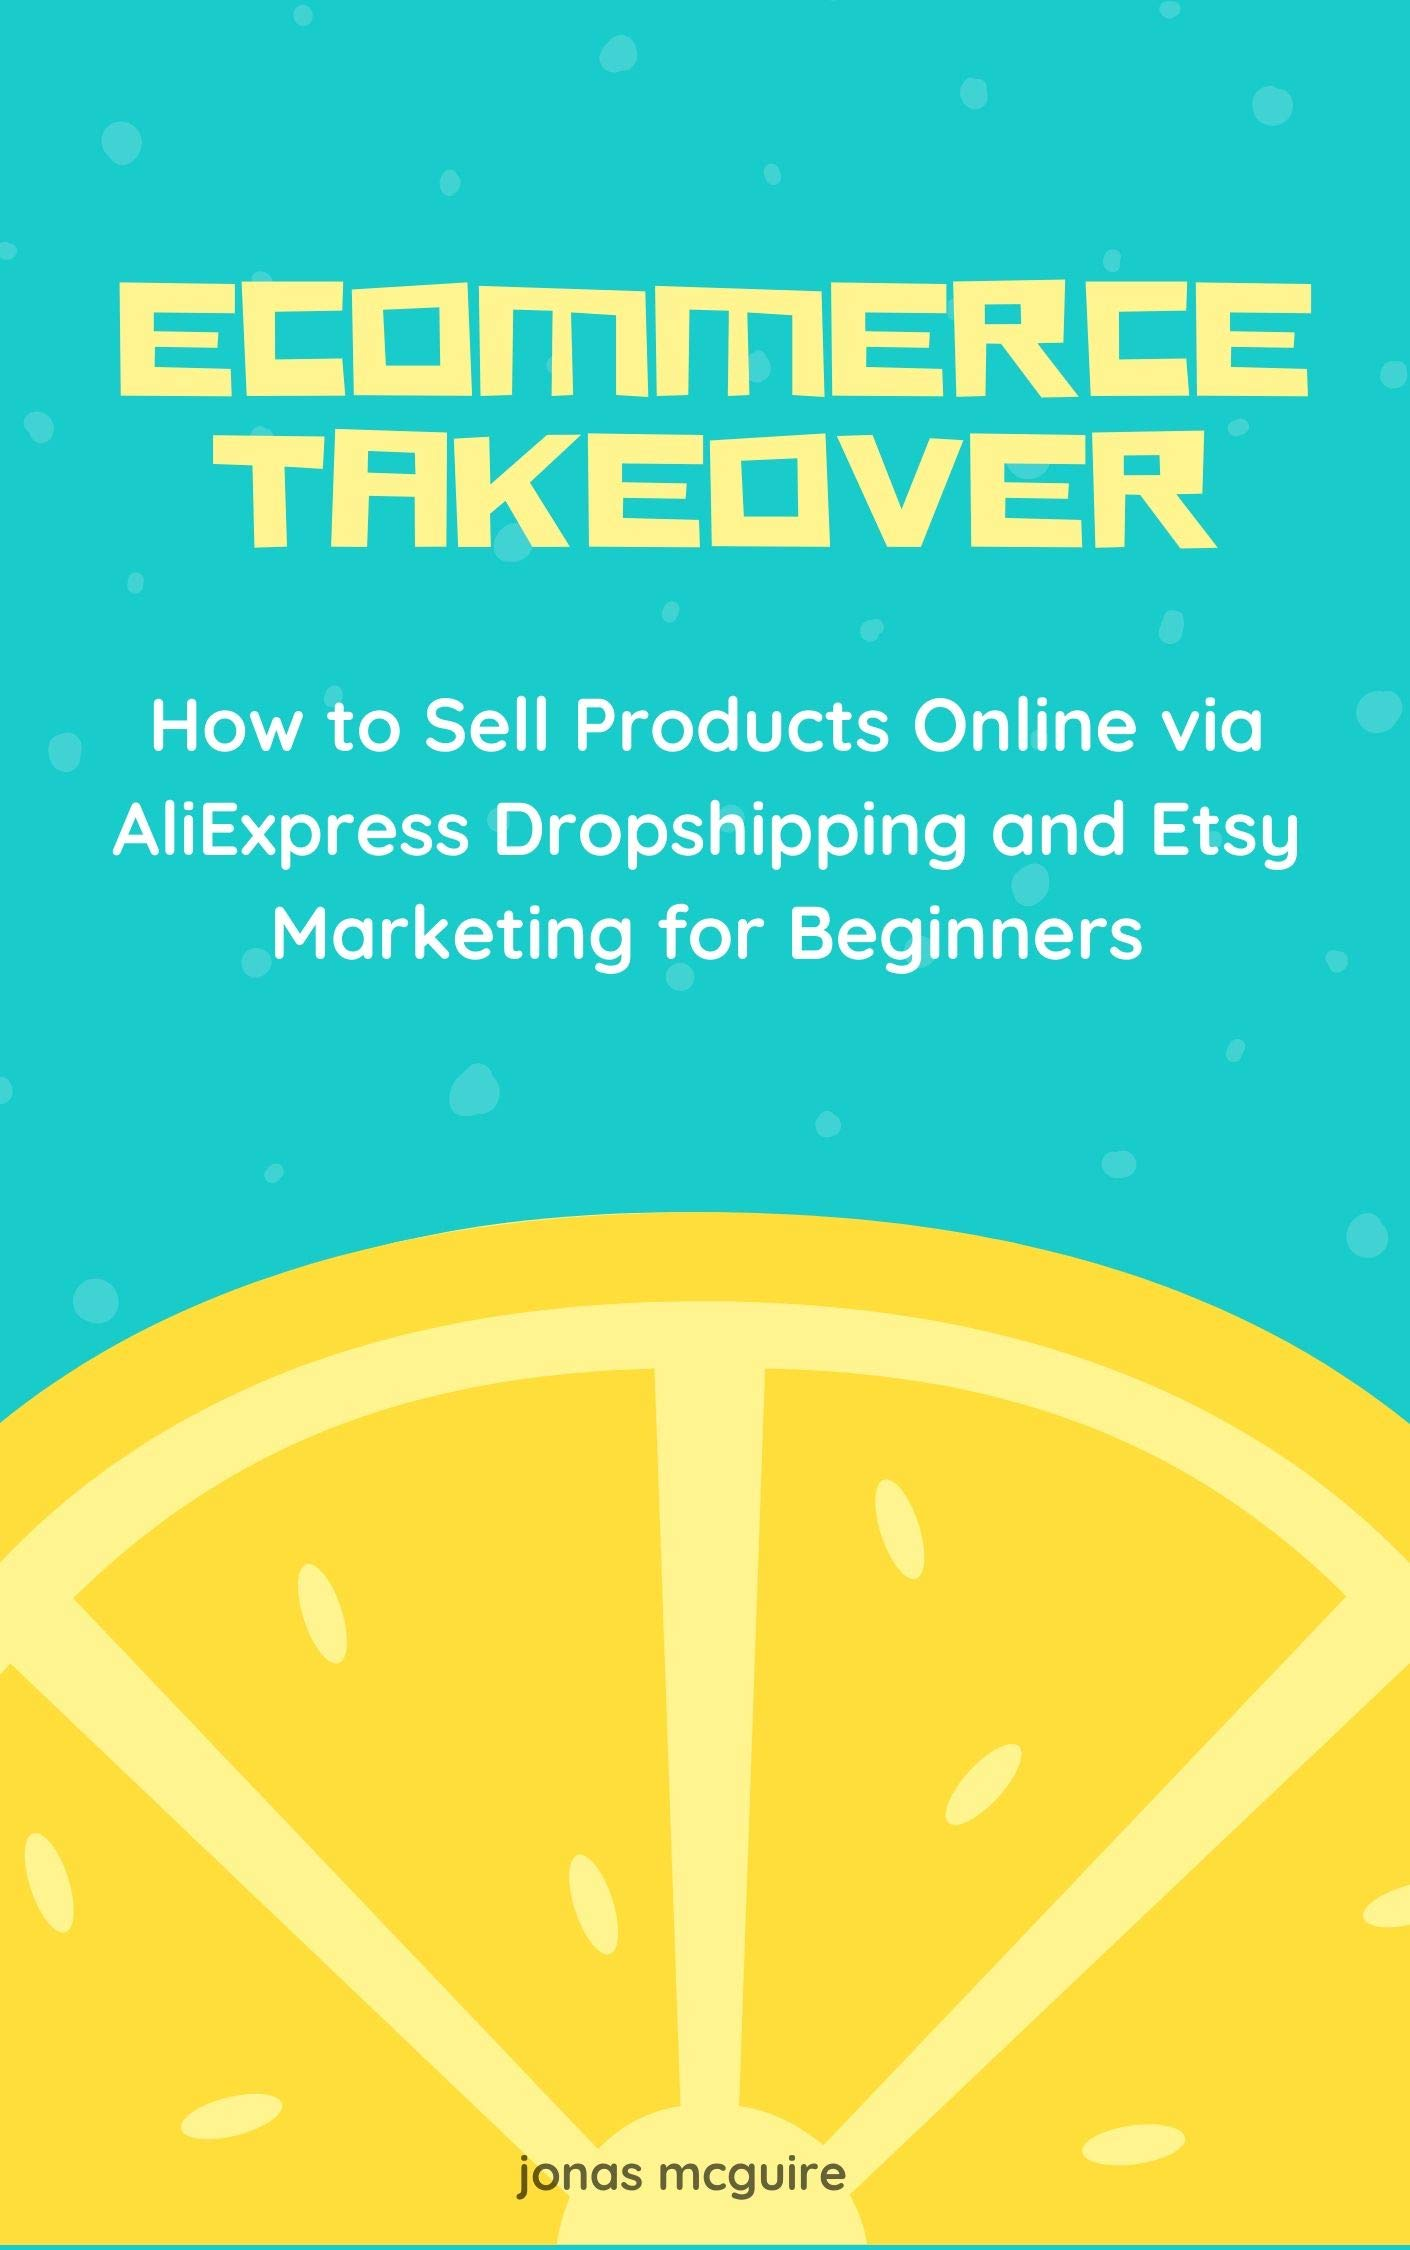 Ecommerce Takeover 2020: How to Sell Products Online via AliExpress Dropshipping and Etsy Marketing for Beginners